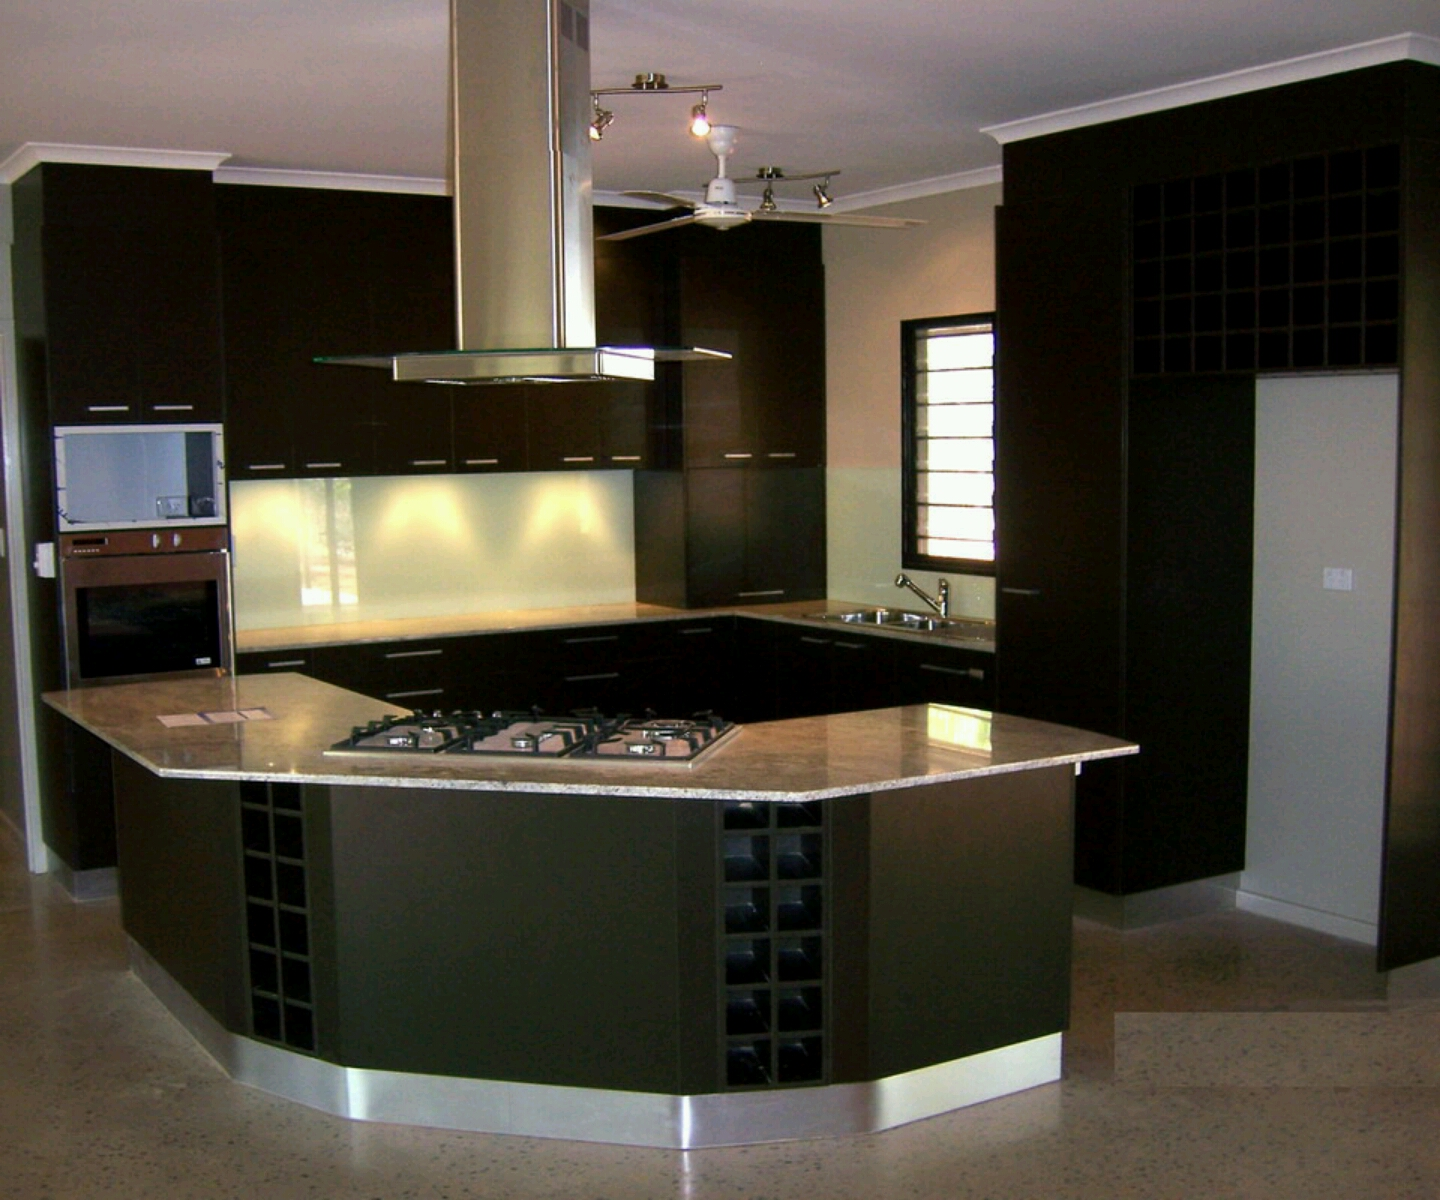 New home designs latest.: Modern kitchen cabinets designs ...